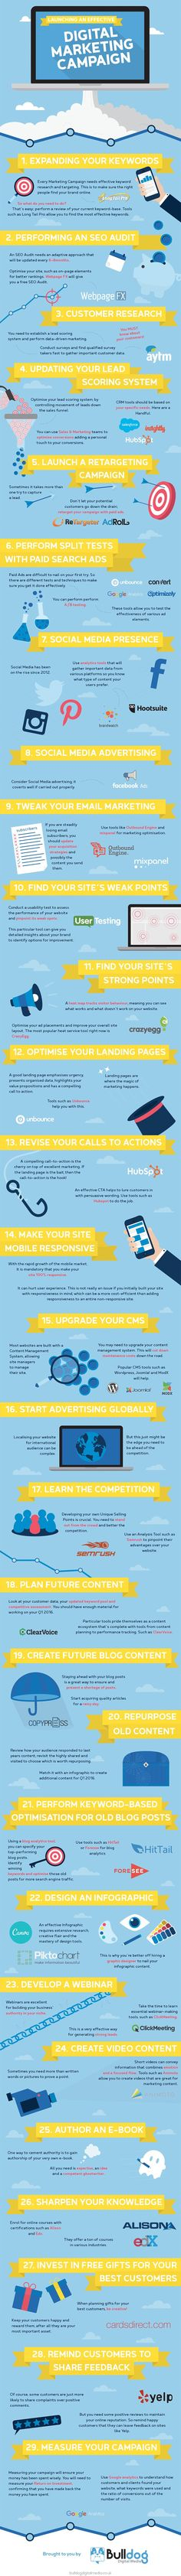 [Infographic] Dominate 2017 With This Done For You Digital Marketing Guide (scheduled via http://www.tailwindapp.com?utm_source=pinterest&utm_medium=twpin&utm_content=post130640863&utm_campaign=scheduler_attribution)